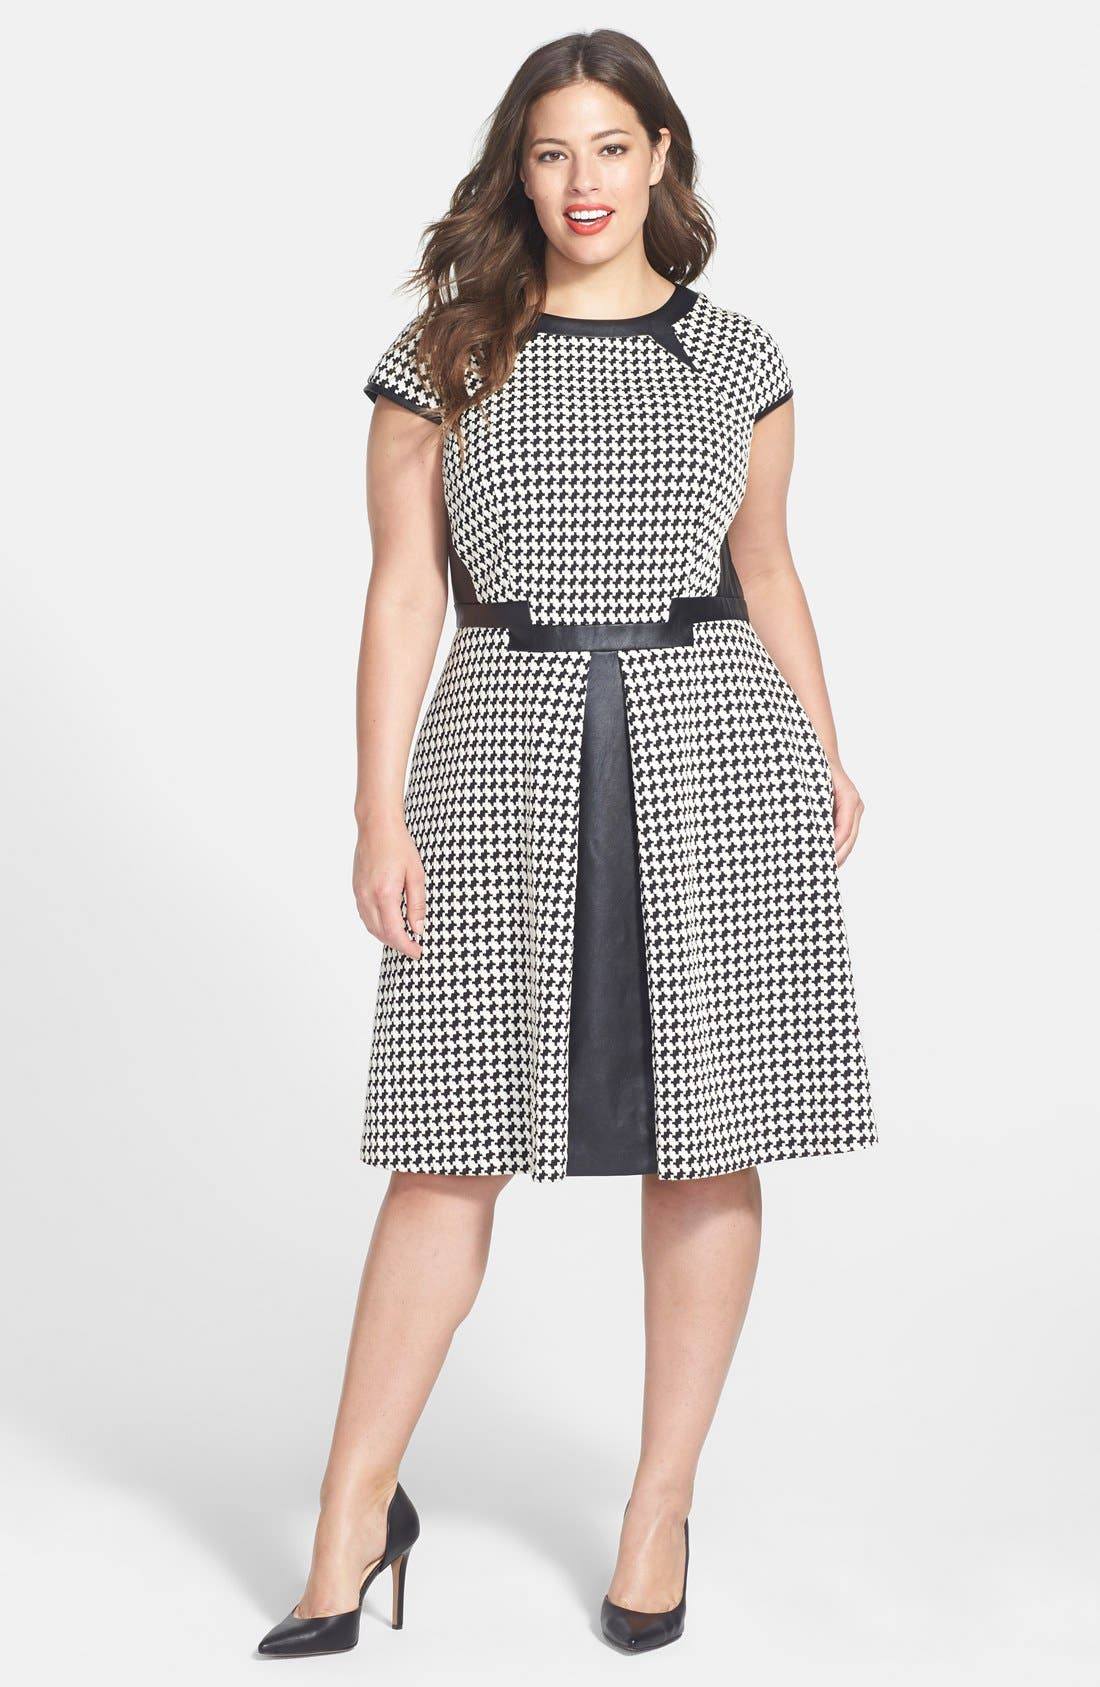 Alternate Image 1 Selected - Julia Jordan Houndstooth Dress & Sam Edelman Pump (Plus Size)